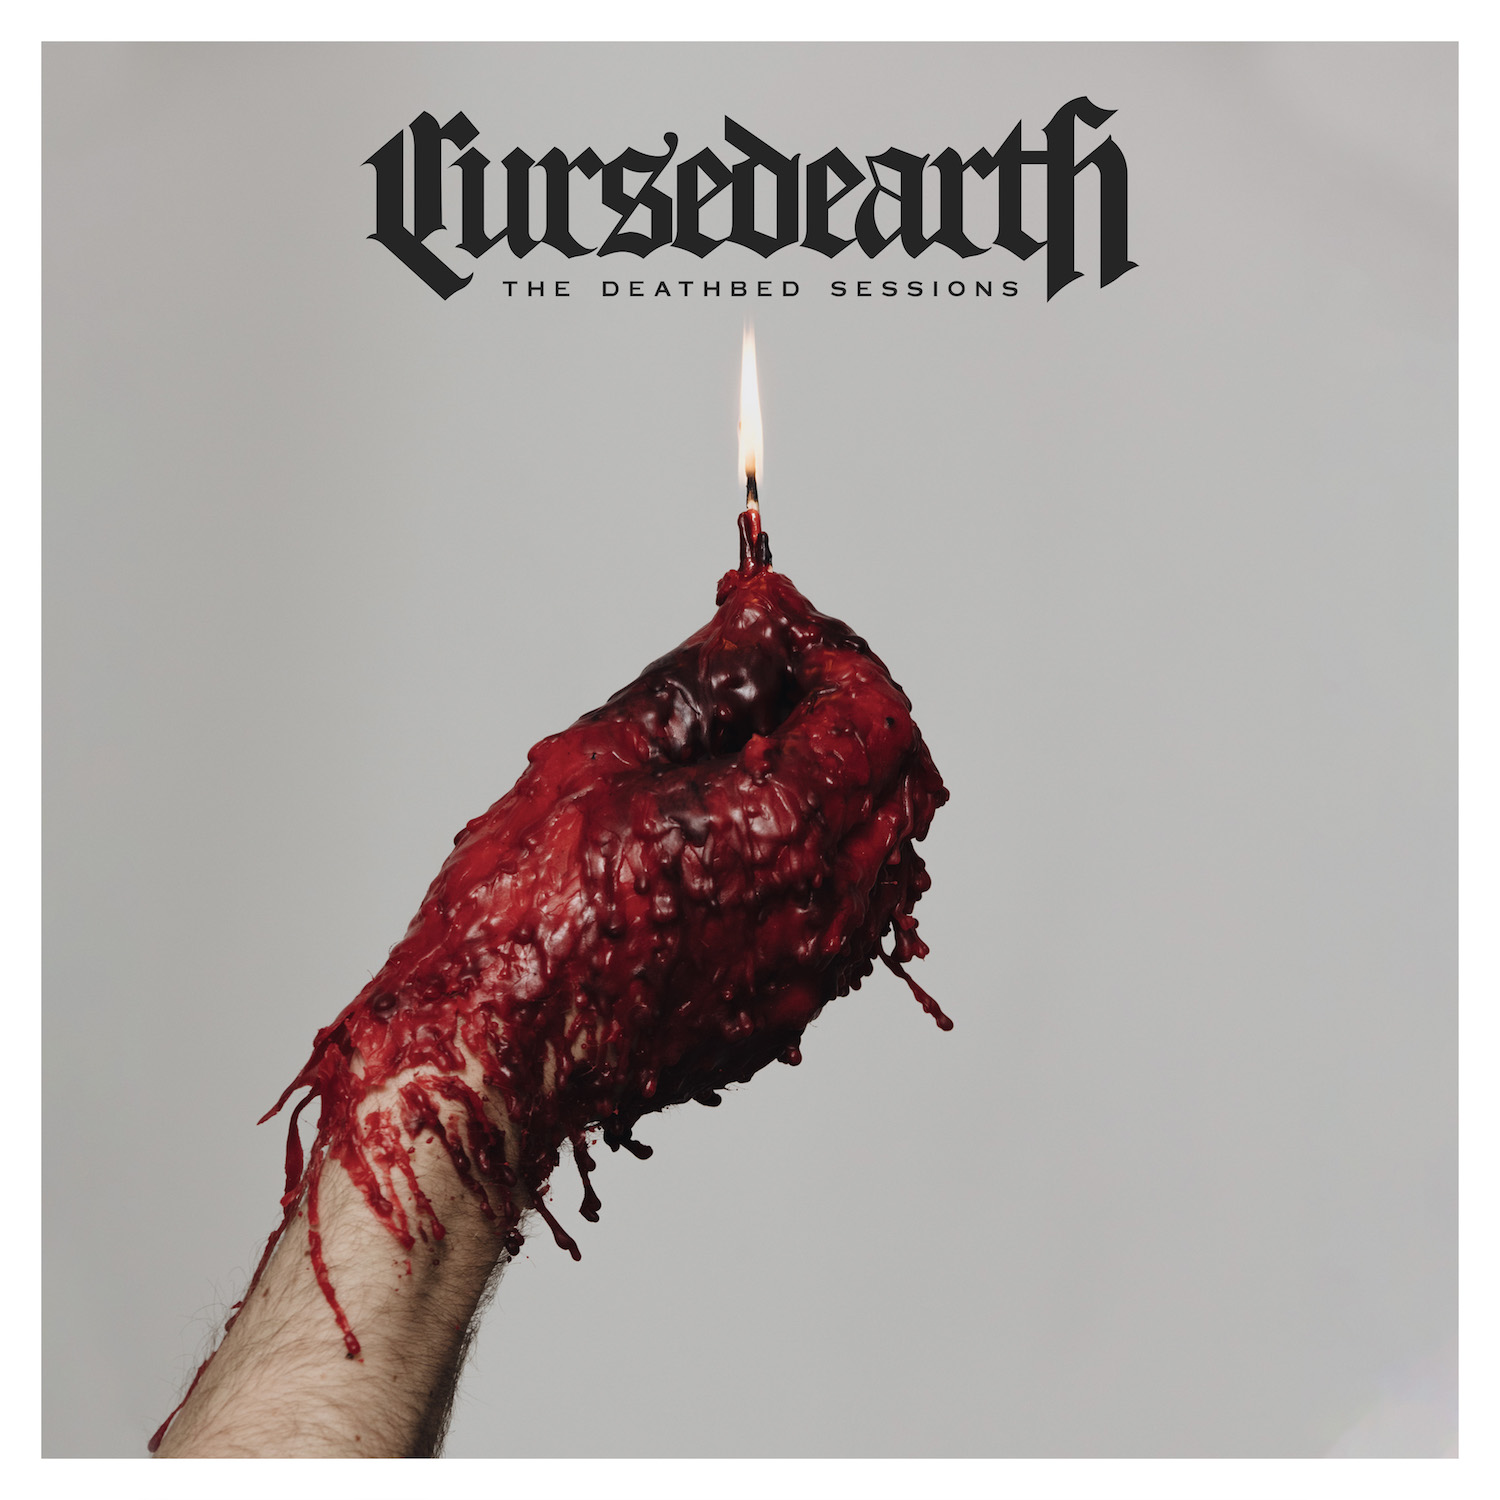 Cursed Earth The Deathbed Sessions artwork